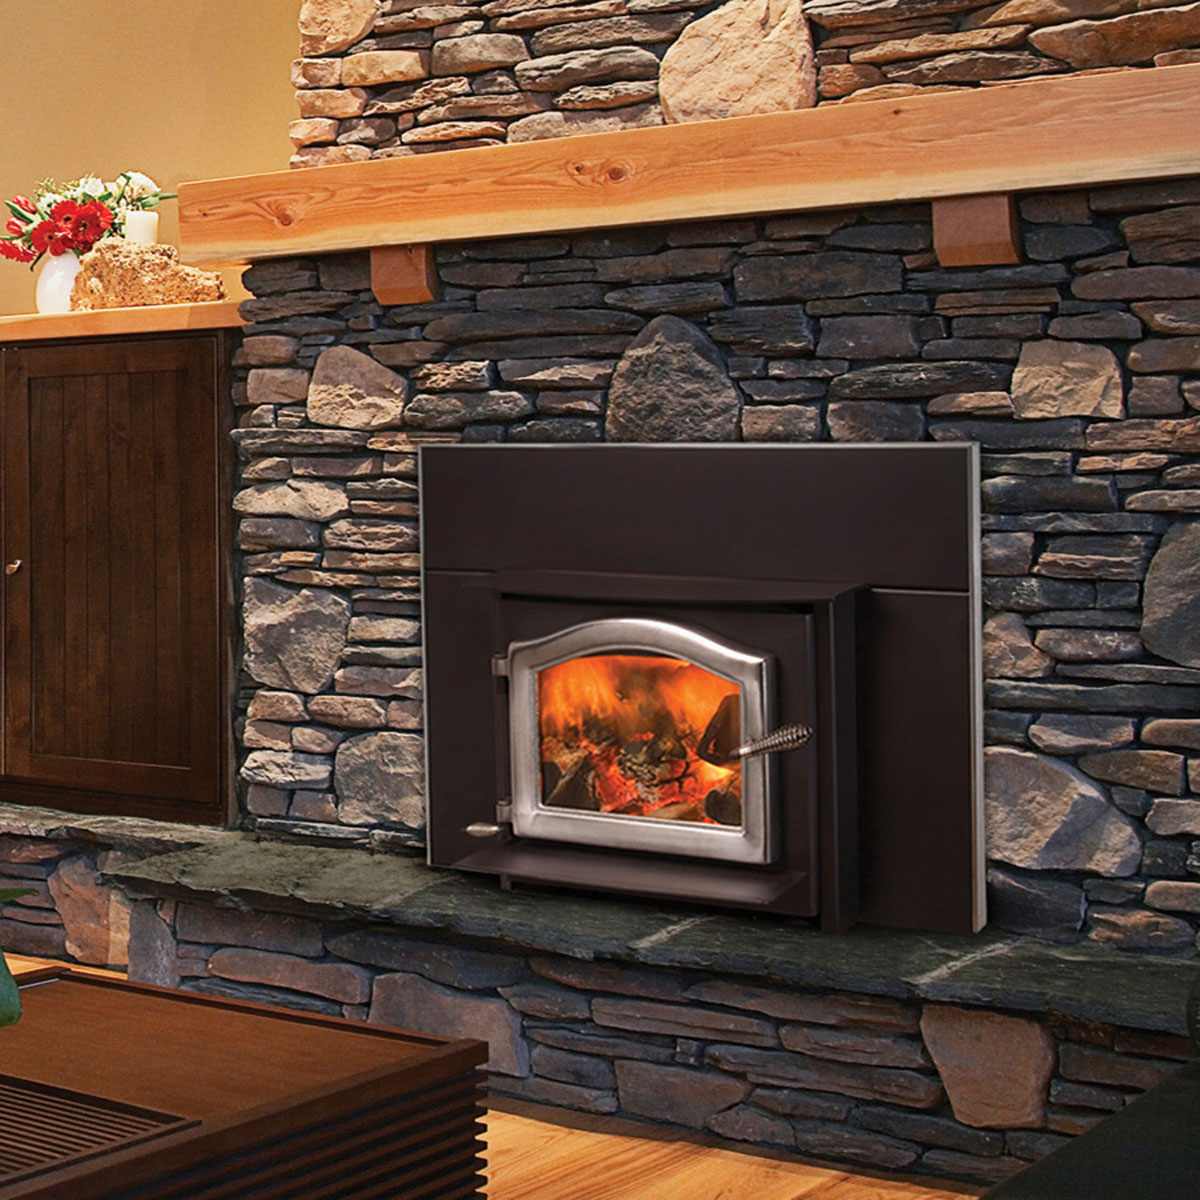 Kuma Ashwood wood fireplace insert, made in the USA - Ashwood Fireplace Insert, Wood Stove Insert By Kuma Stoves